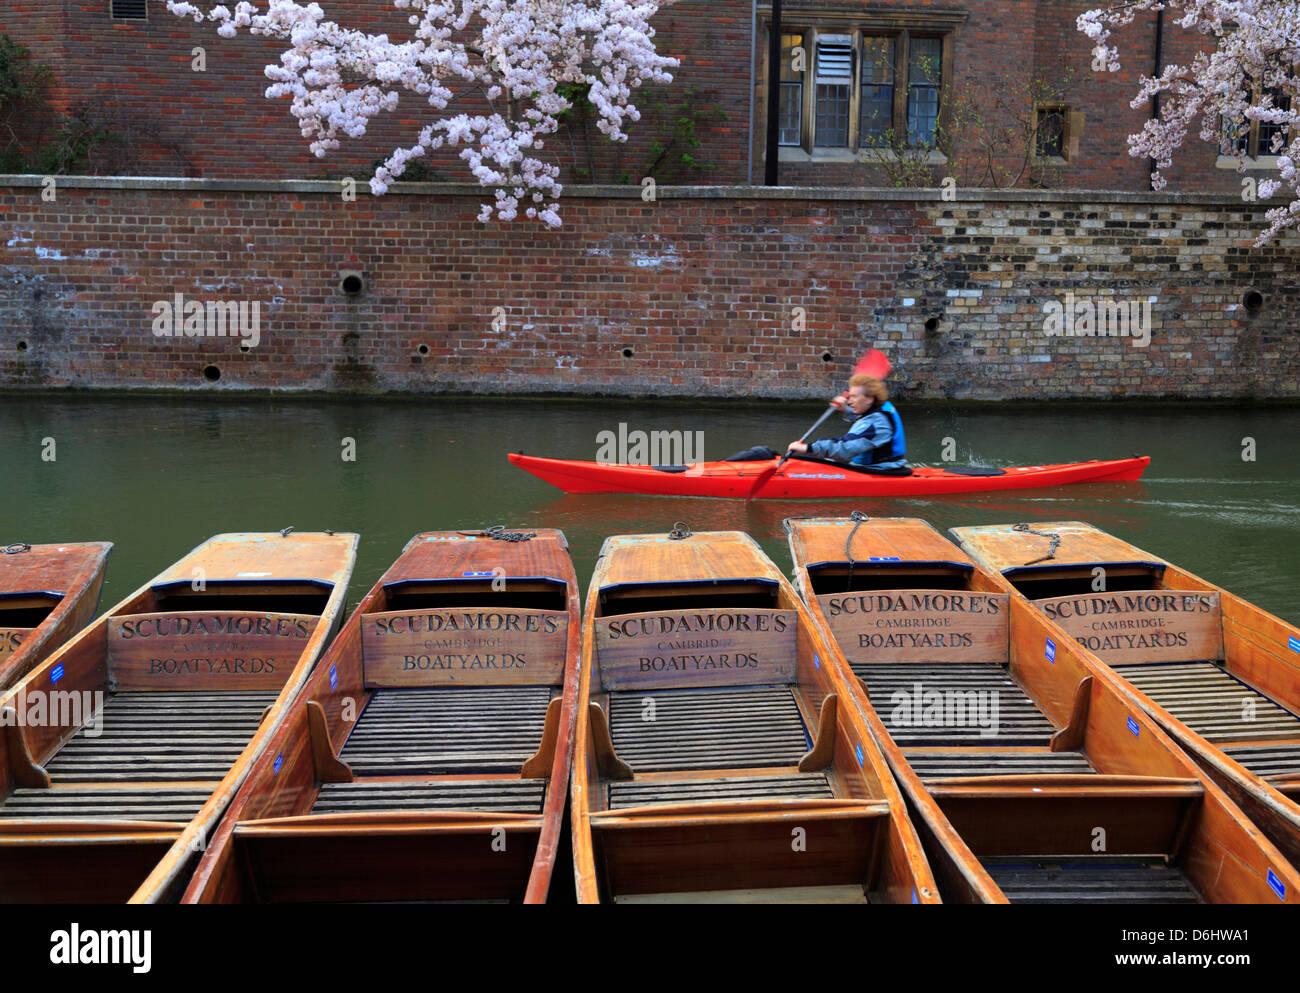 A kayaker on the River Cam moving swiftly pass Scudamore's Cambridge Boatyards - Stock Image